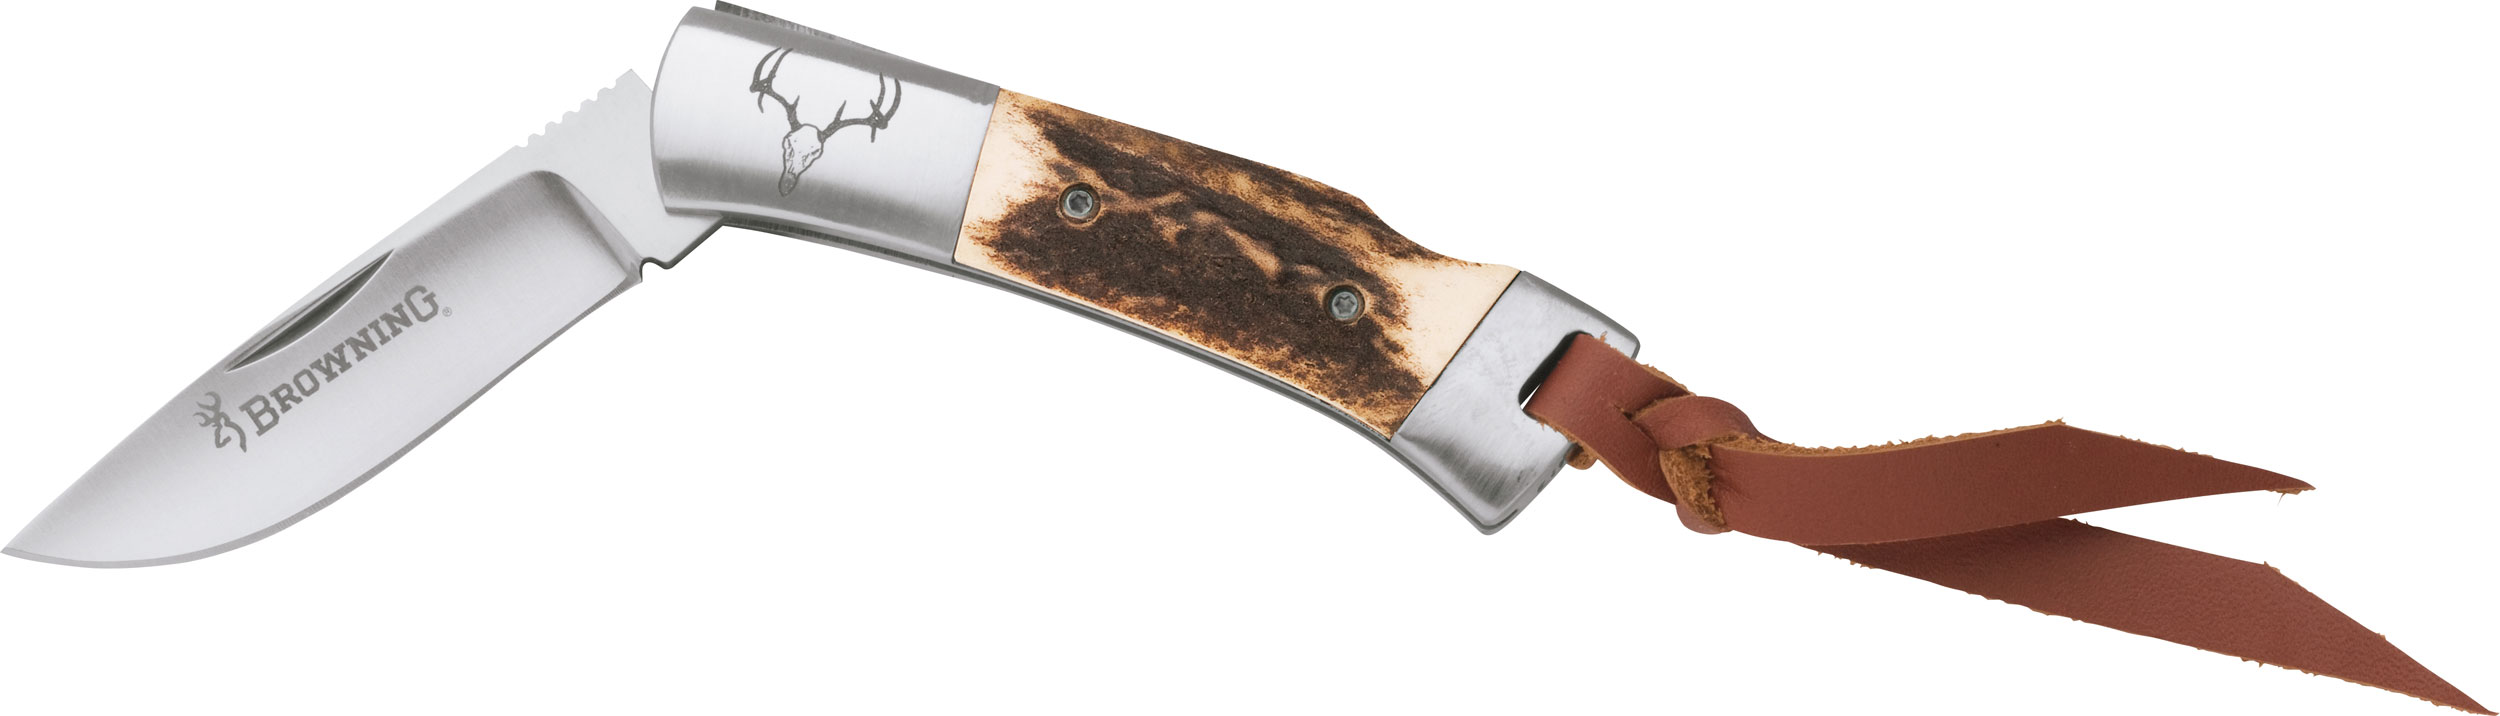 Buy Browning Lil' Bit Hunting Series at KnifeCenter